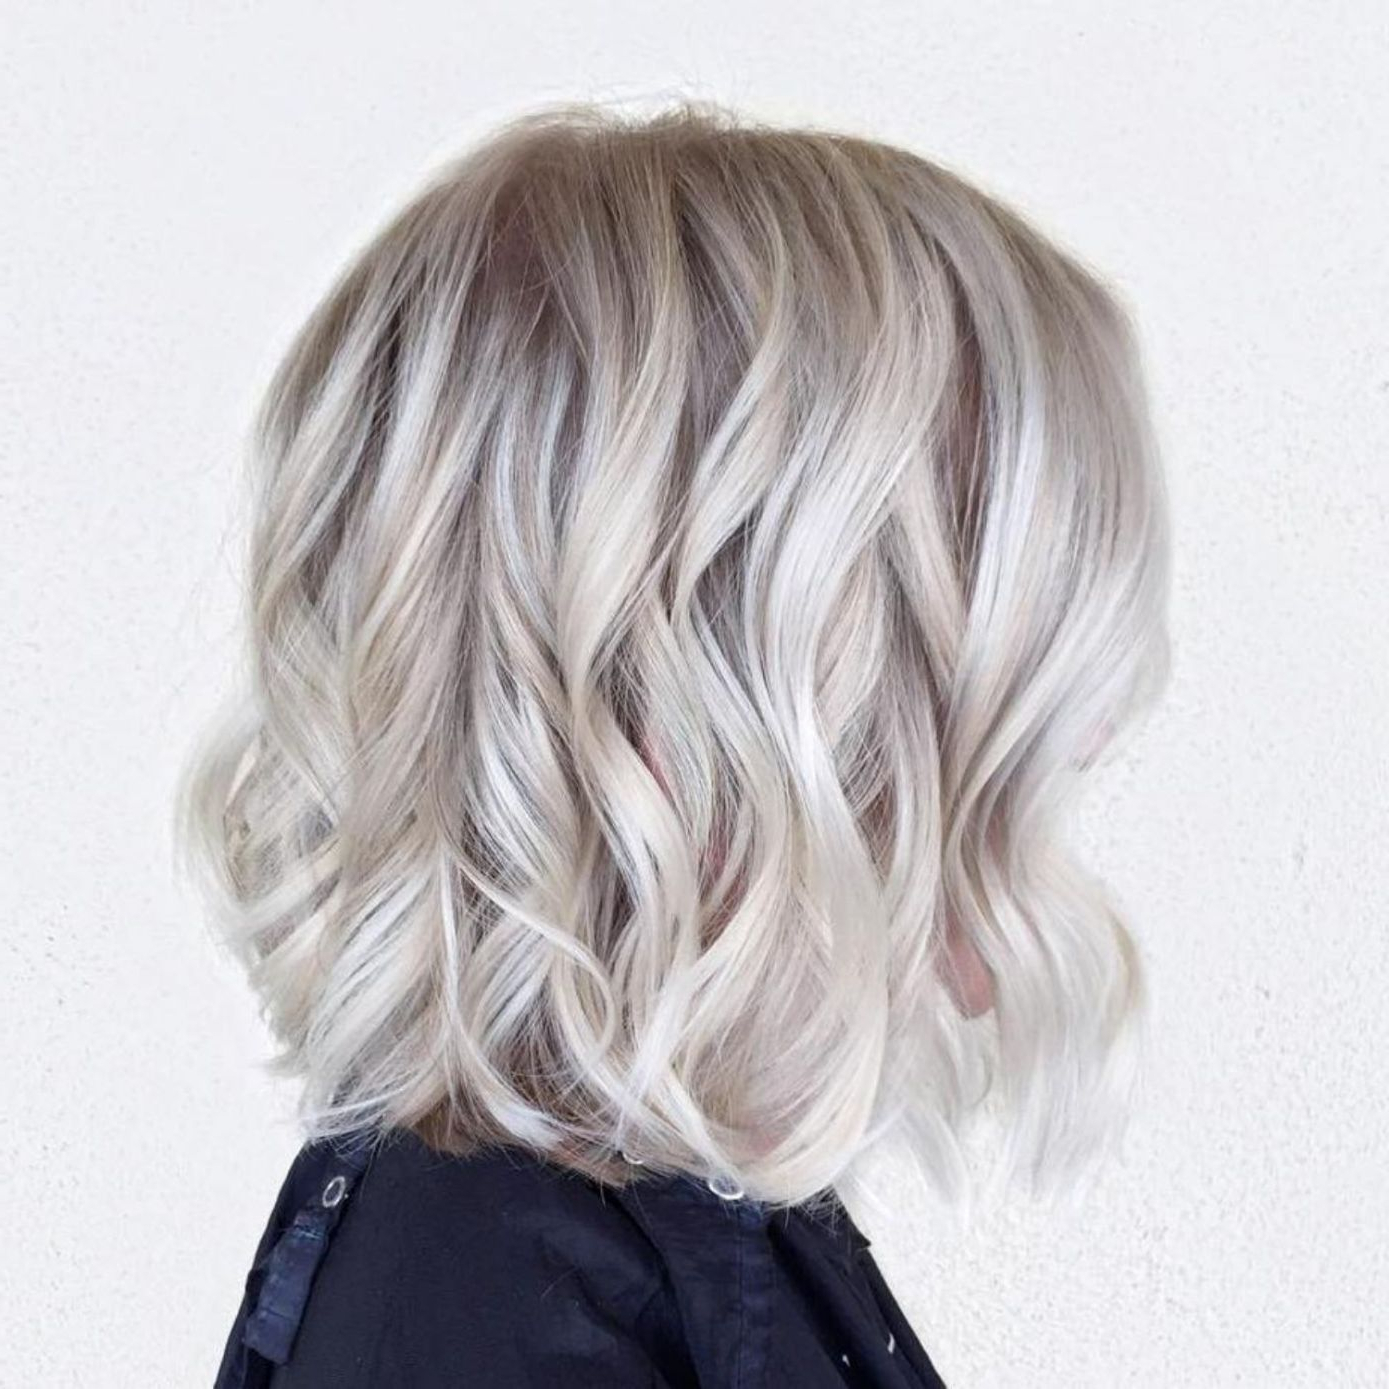 70 Winning Looks With Bob Haircuts For Fine Hair In 2018 | Hair Throughout White Blonde Curly Layered Bob Hairstyles (View 19 of 25)